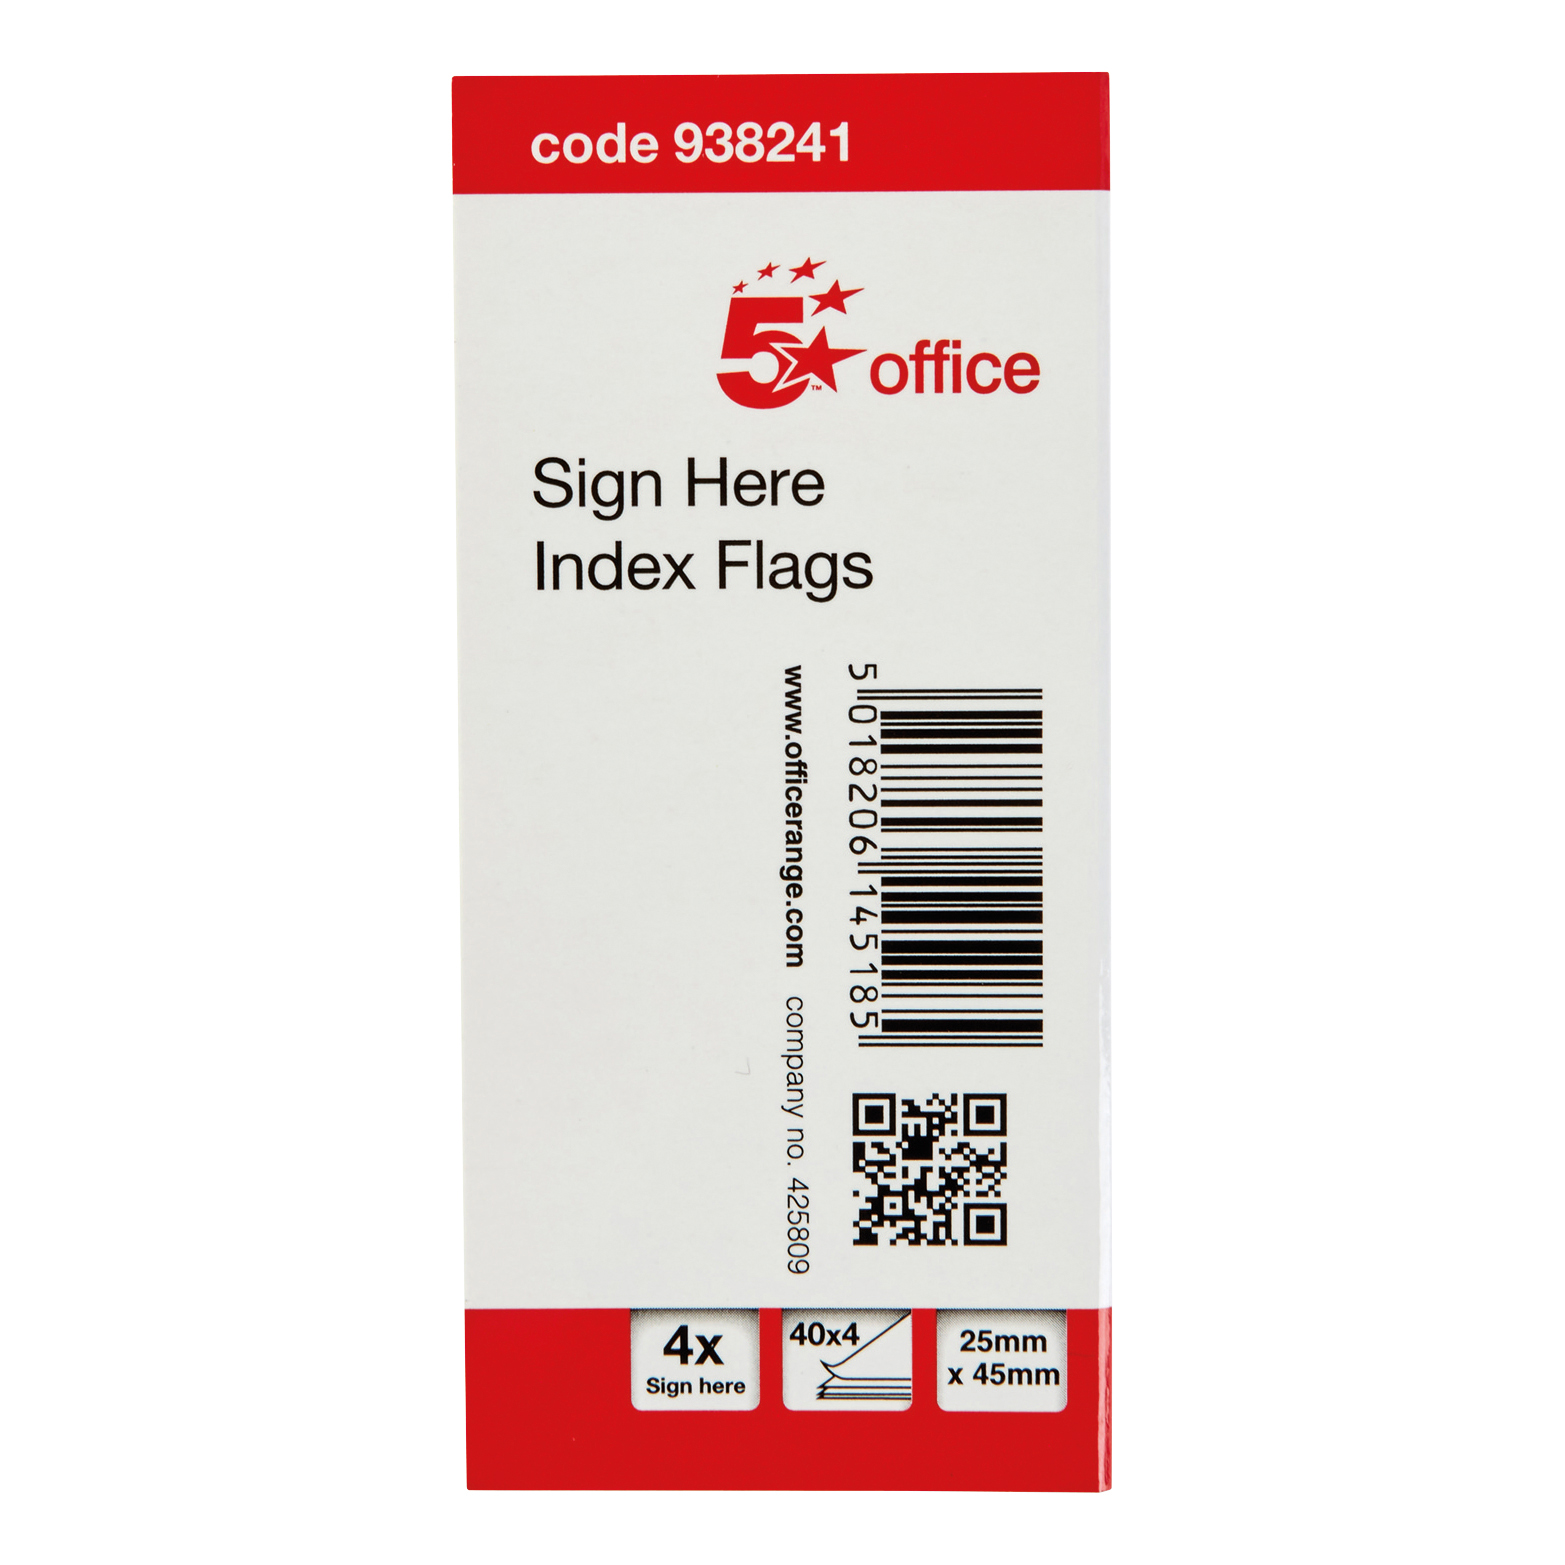 5 Star Office Sign Here Index Flags Tab With Red Arrow 46x25mm 40x4 per cover 5 covers 800 Flags